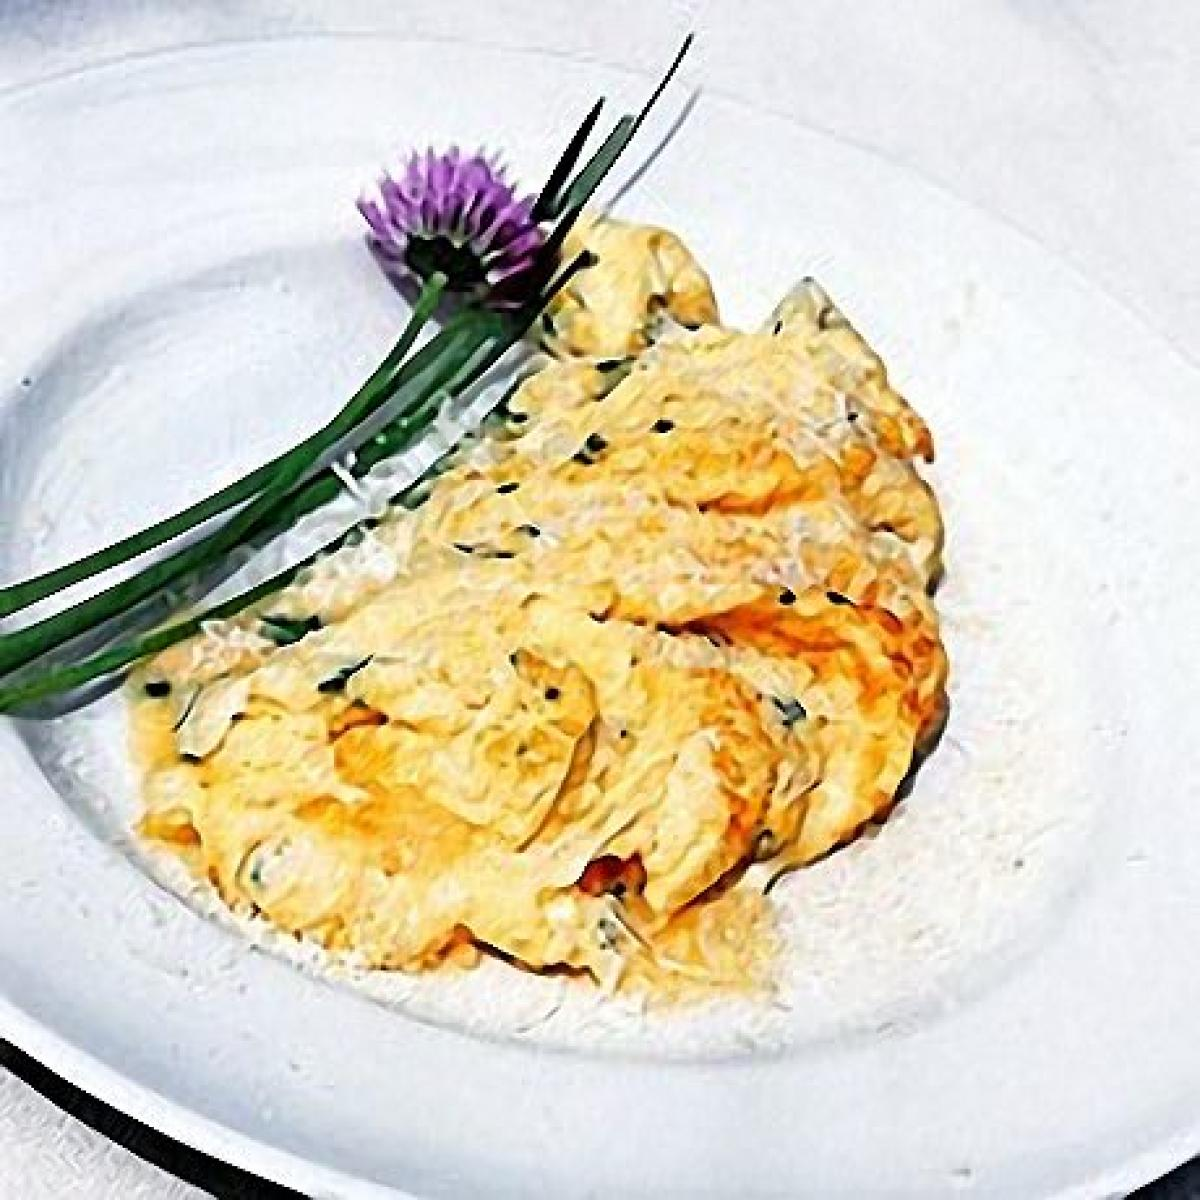 A picture of Delia's Folded Omelette (French style) recipe